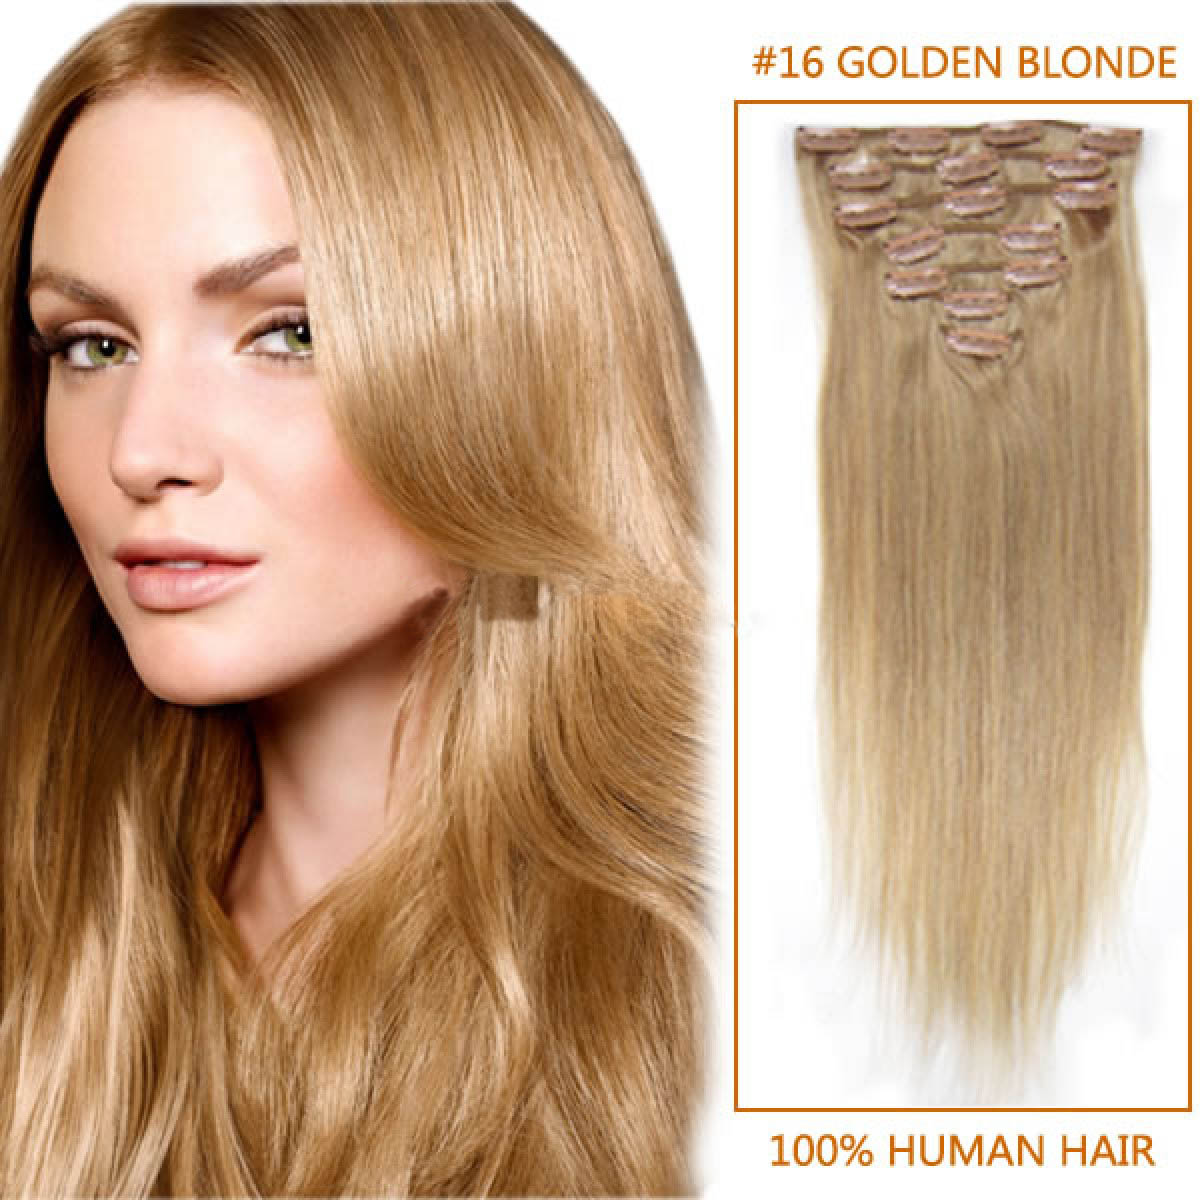 24 Inch 16 Golden Blonde Clip In Remy Human Hair Extensions 7pcs